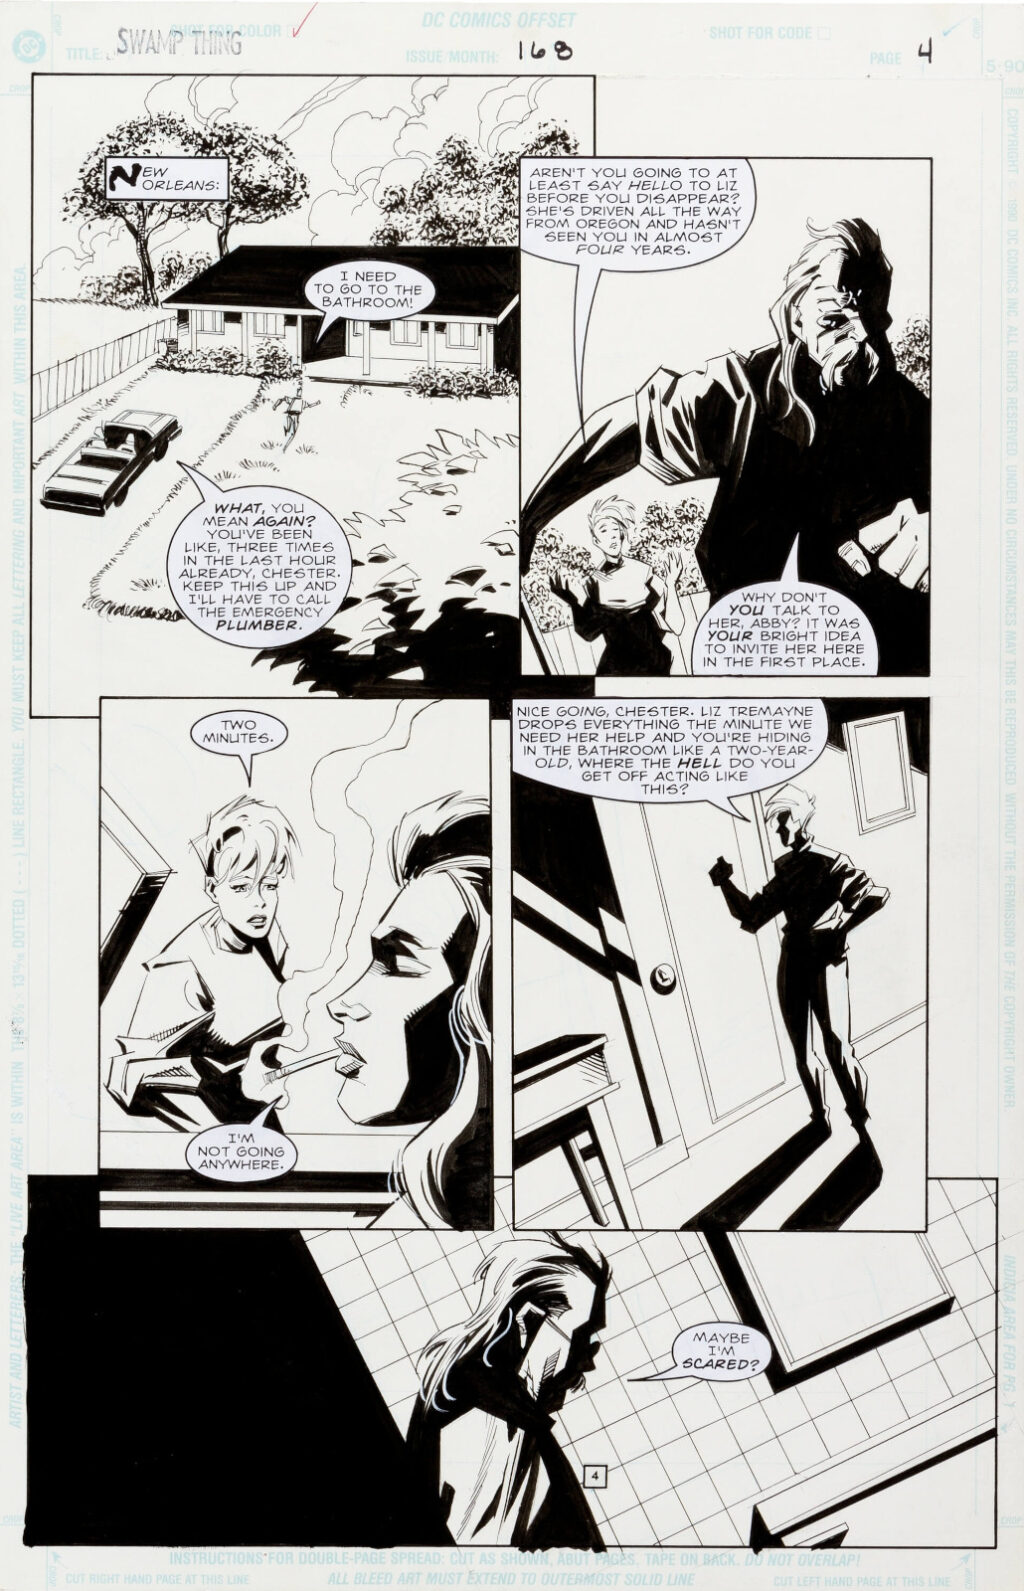 Swamp Thing issue 168 page 4 by Phil Hester and Kim DeMulder